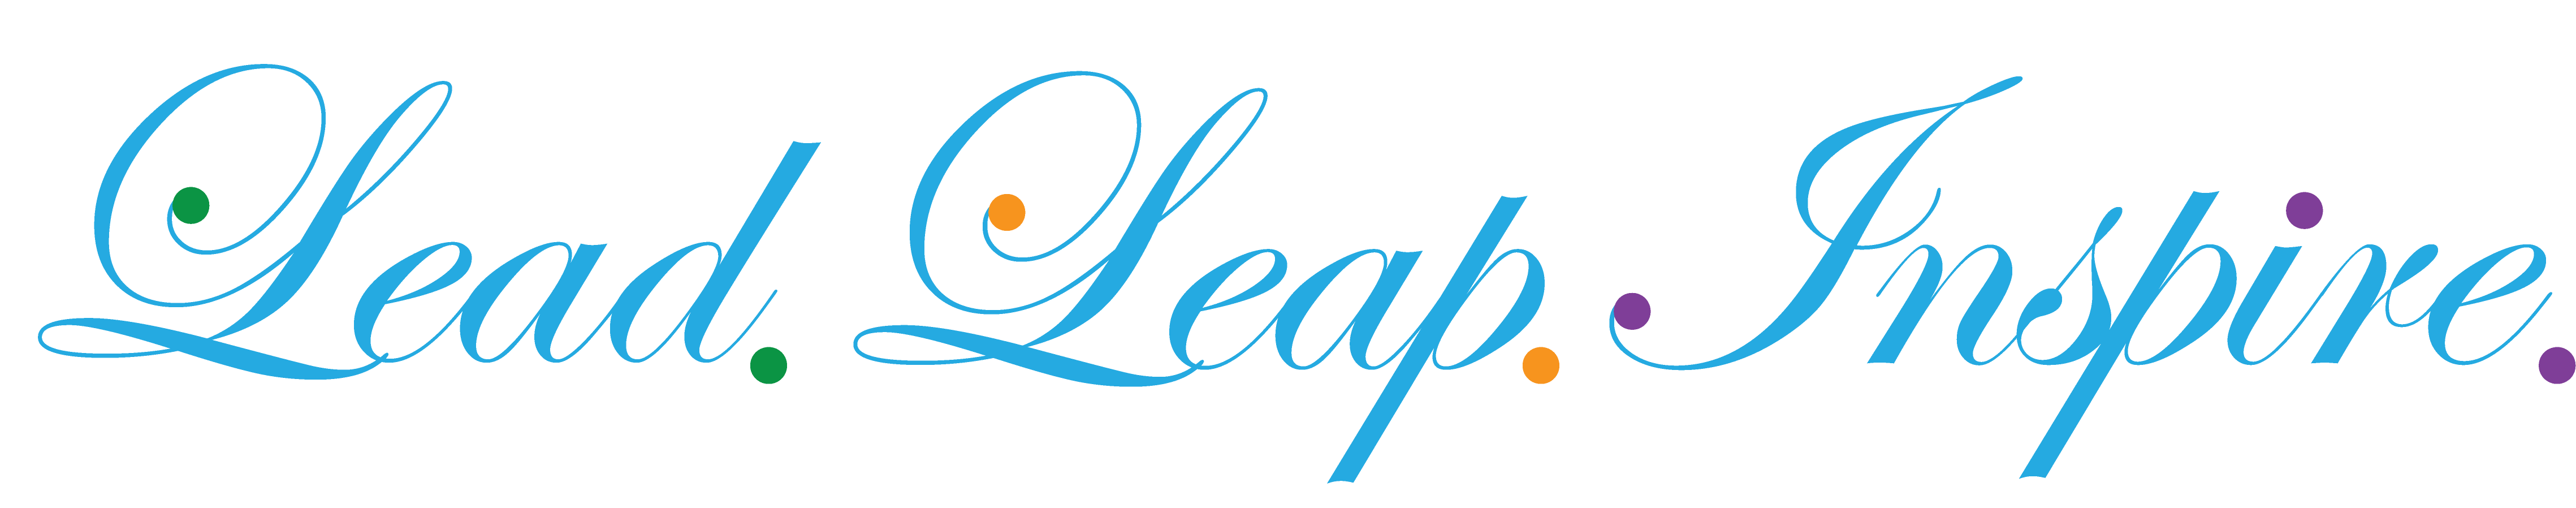 Lead_Leap_Inspire_periods